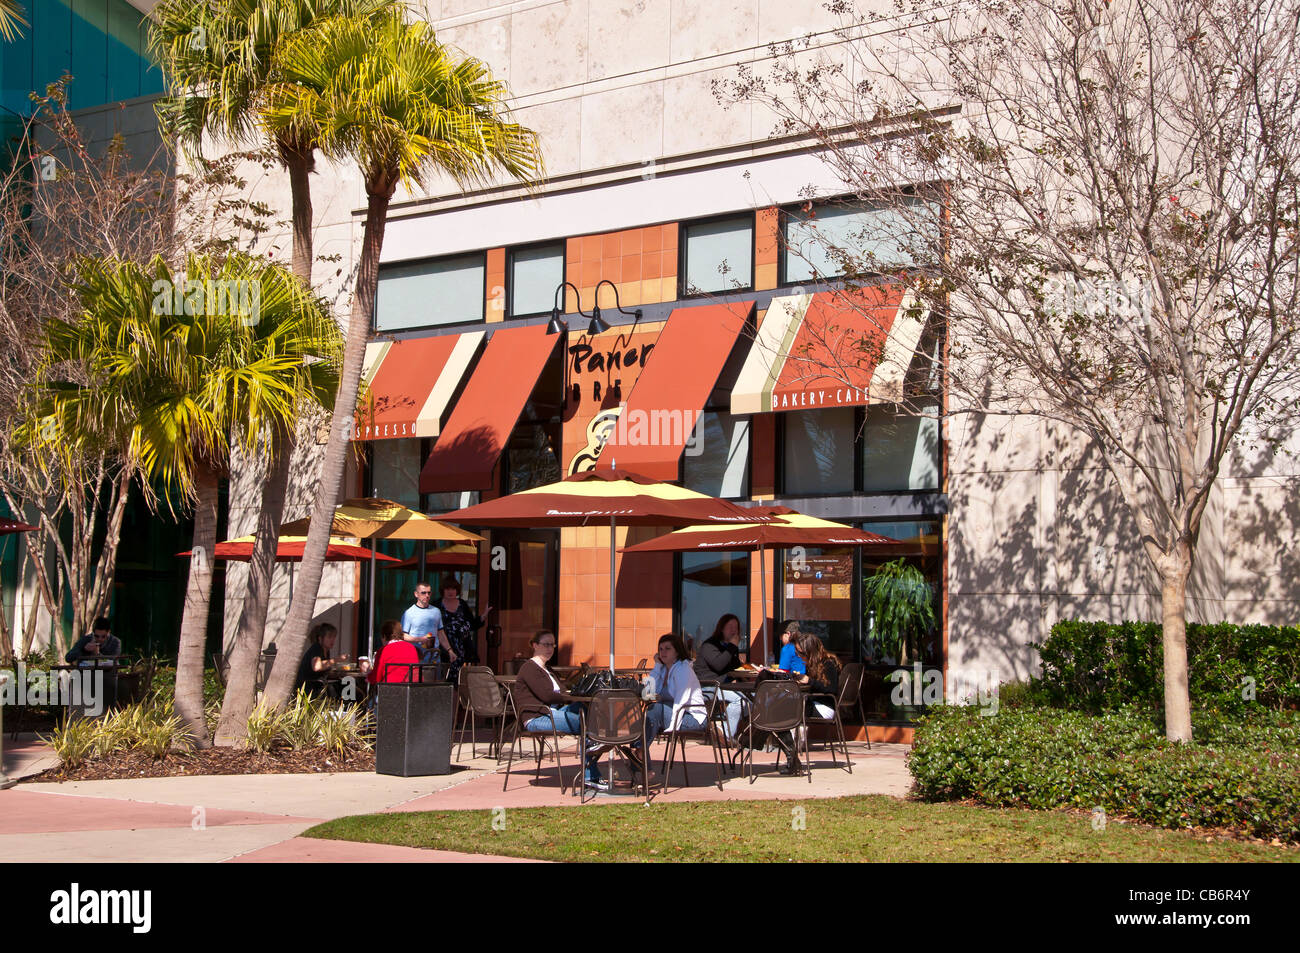 Orlando Florida,  Mall at Millenia outdoor dining upscale shopping mall - Stock Image